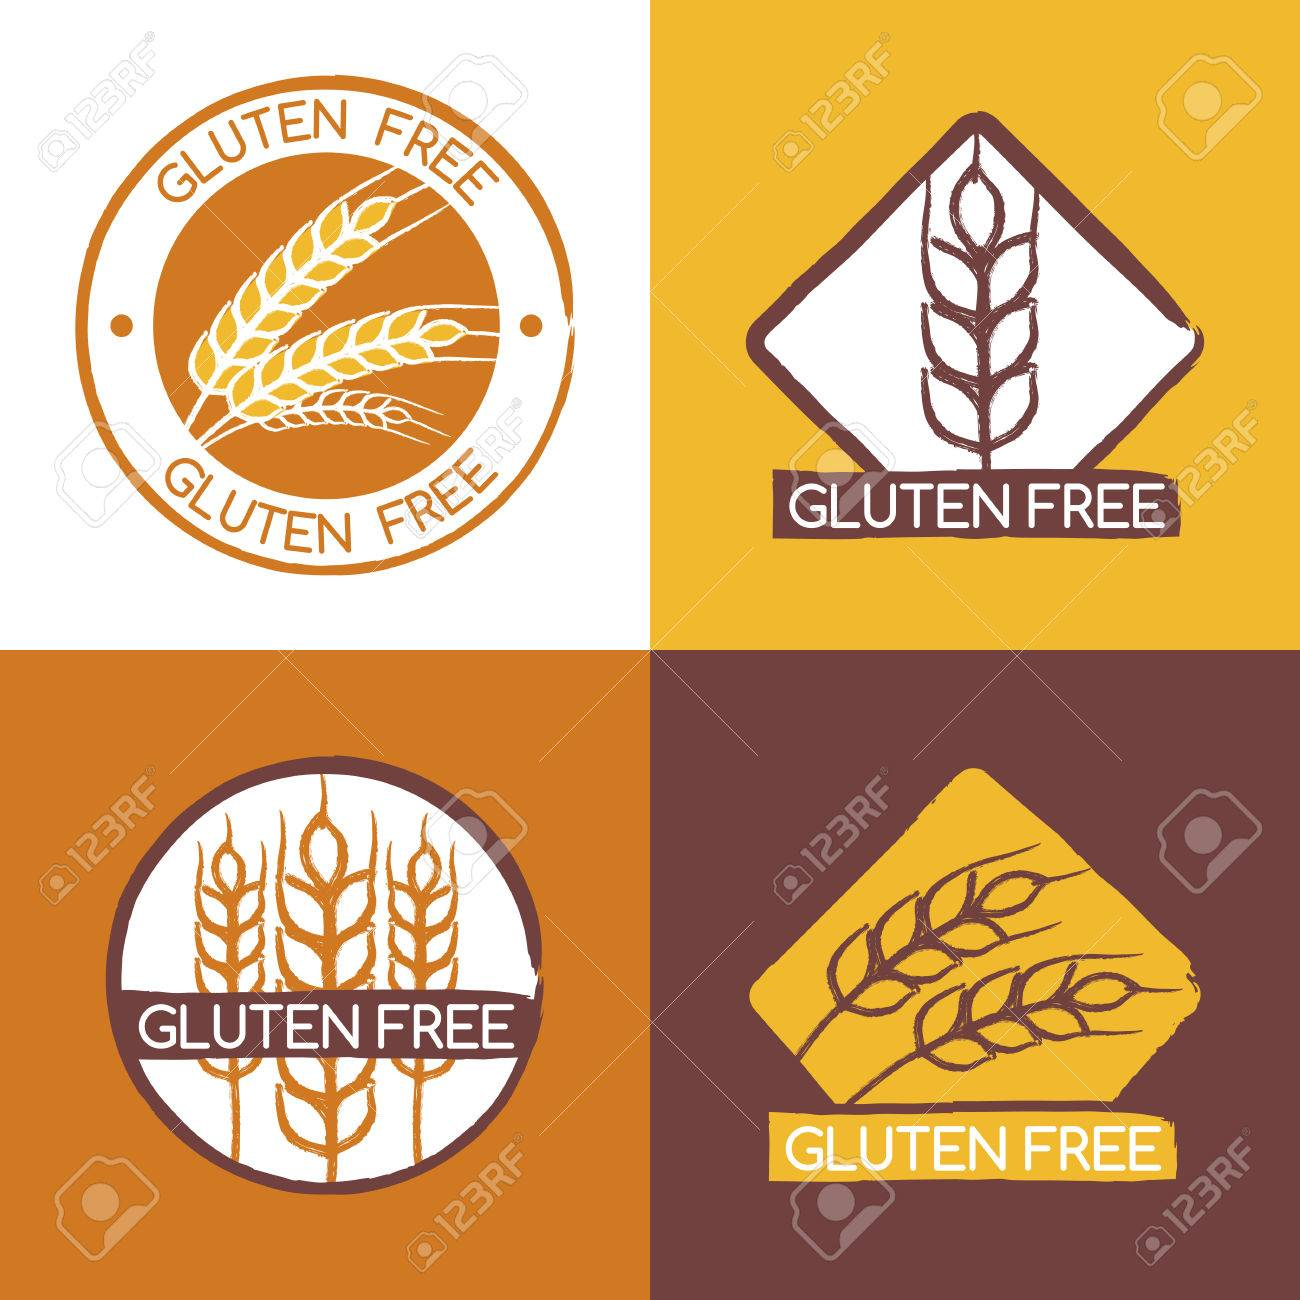 Set of vector gluten free product badges, labels, stickers  Wheat